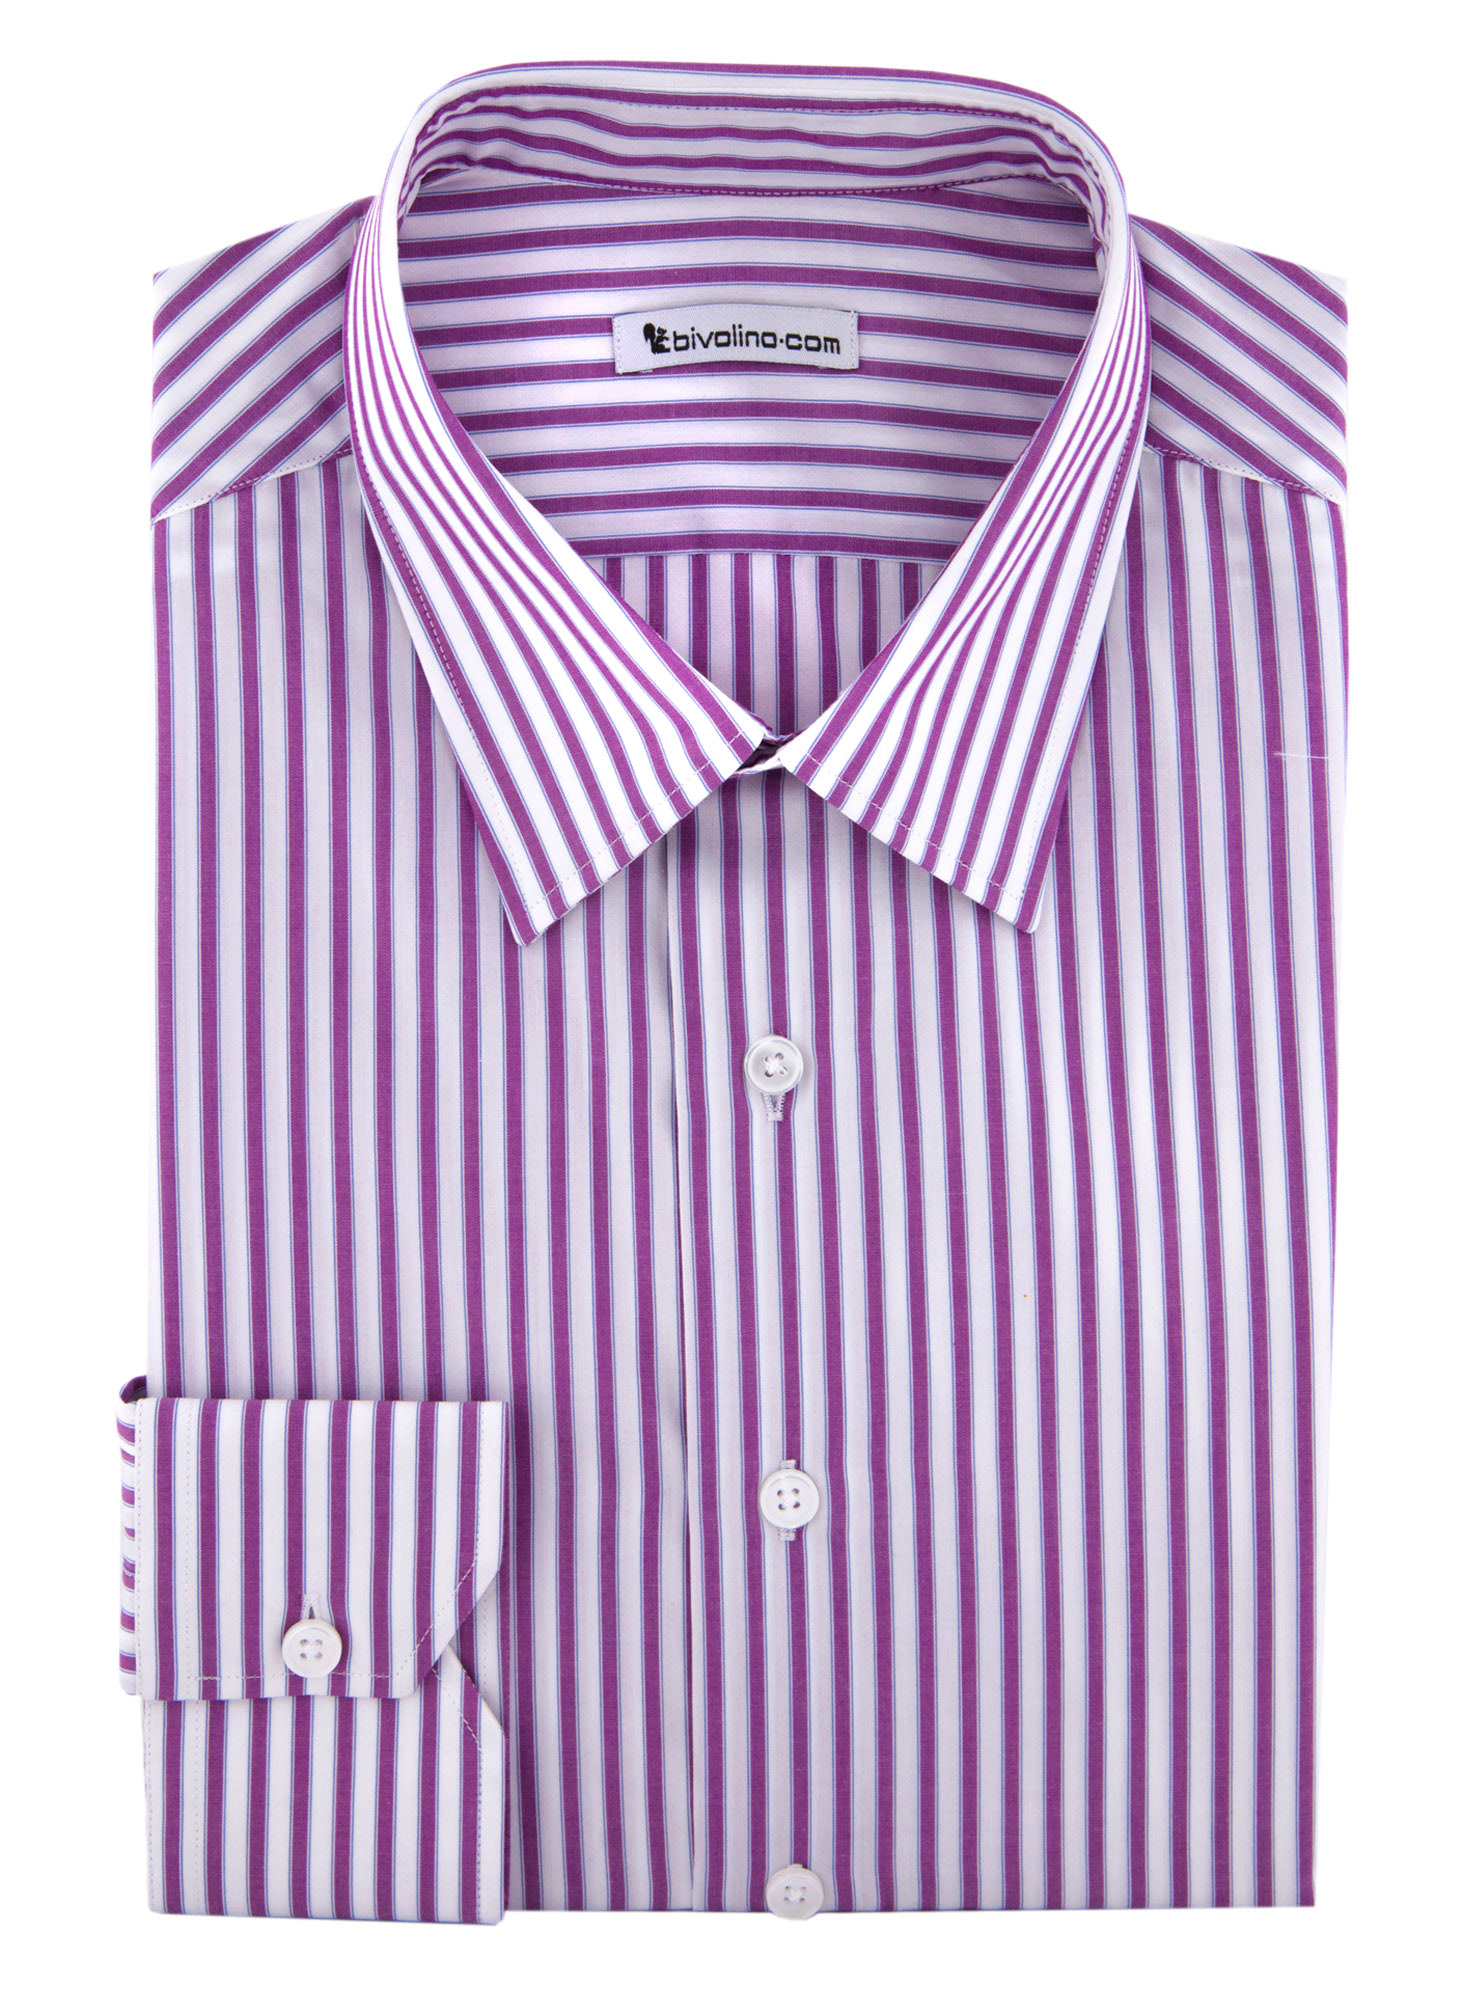 TREPONTI - purple striped poplin shirt - GLEN 3